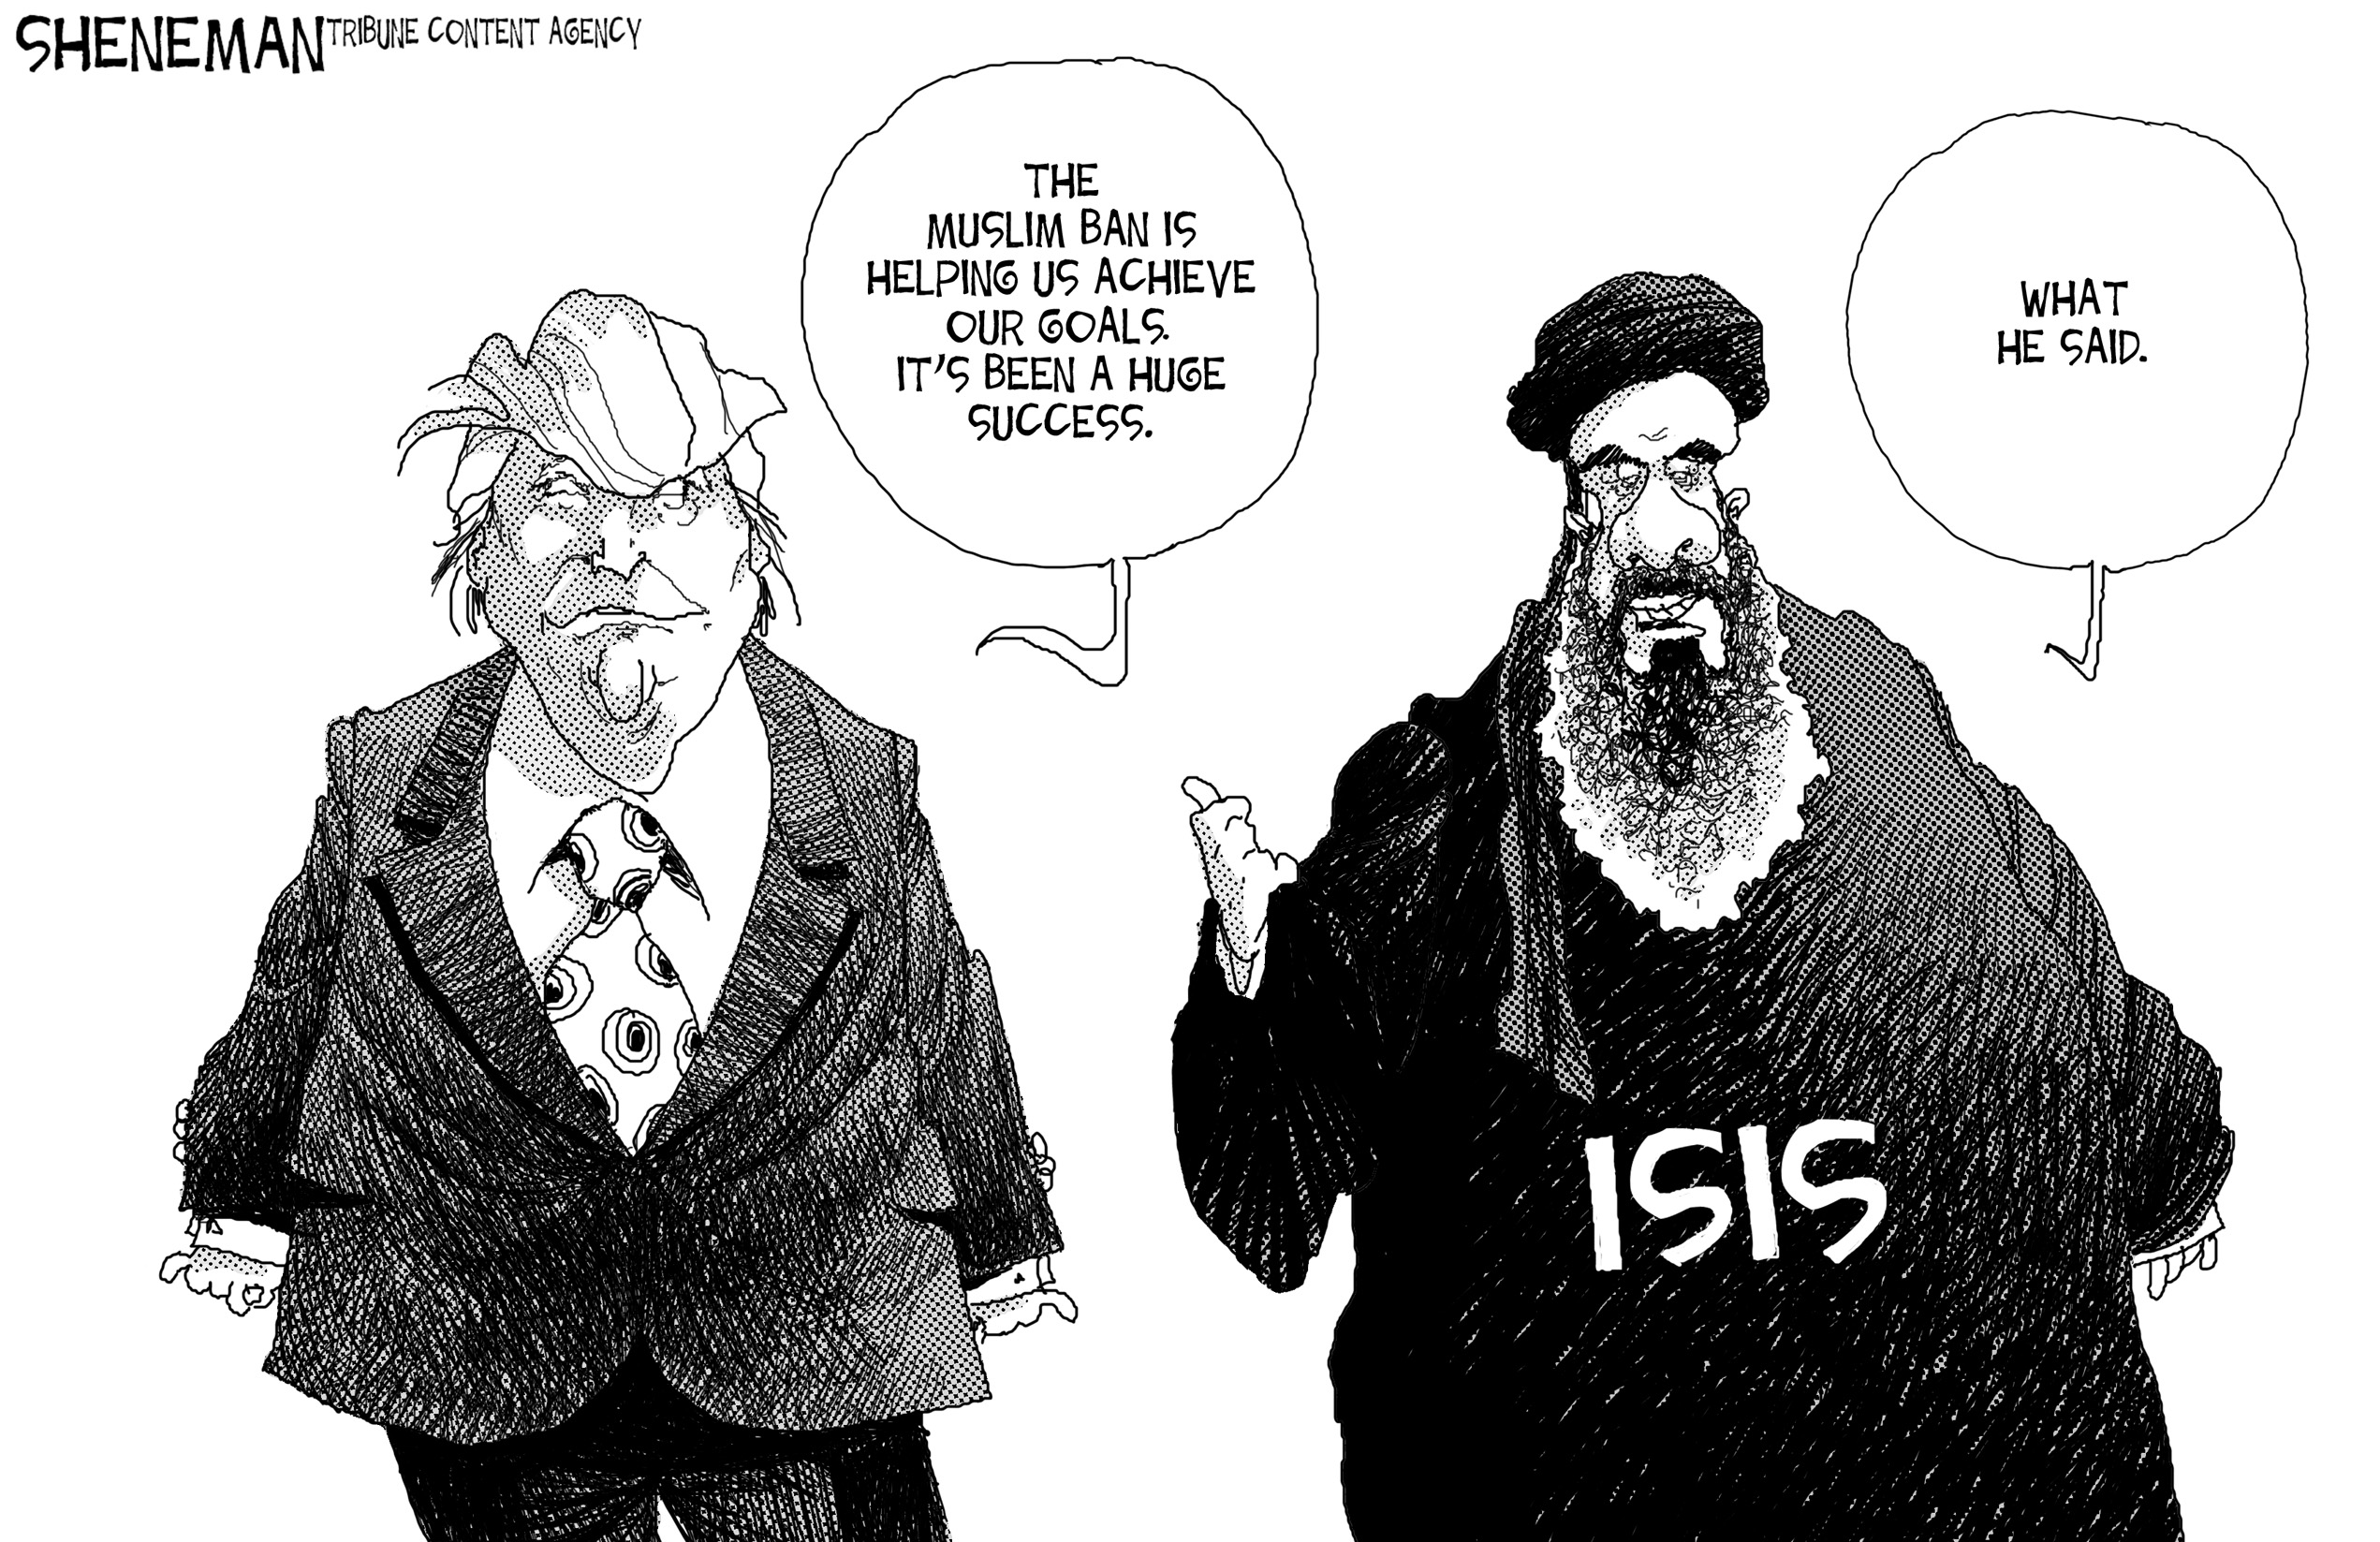 Editorial: Don't be distracted, Trump's executive order is a 'Muslim ban'